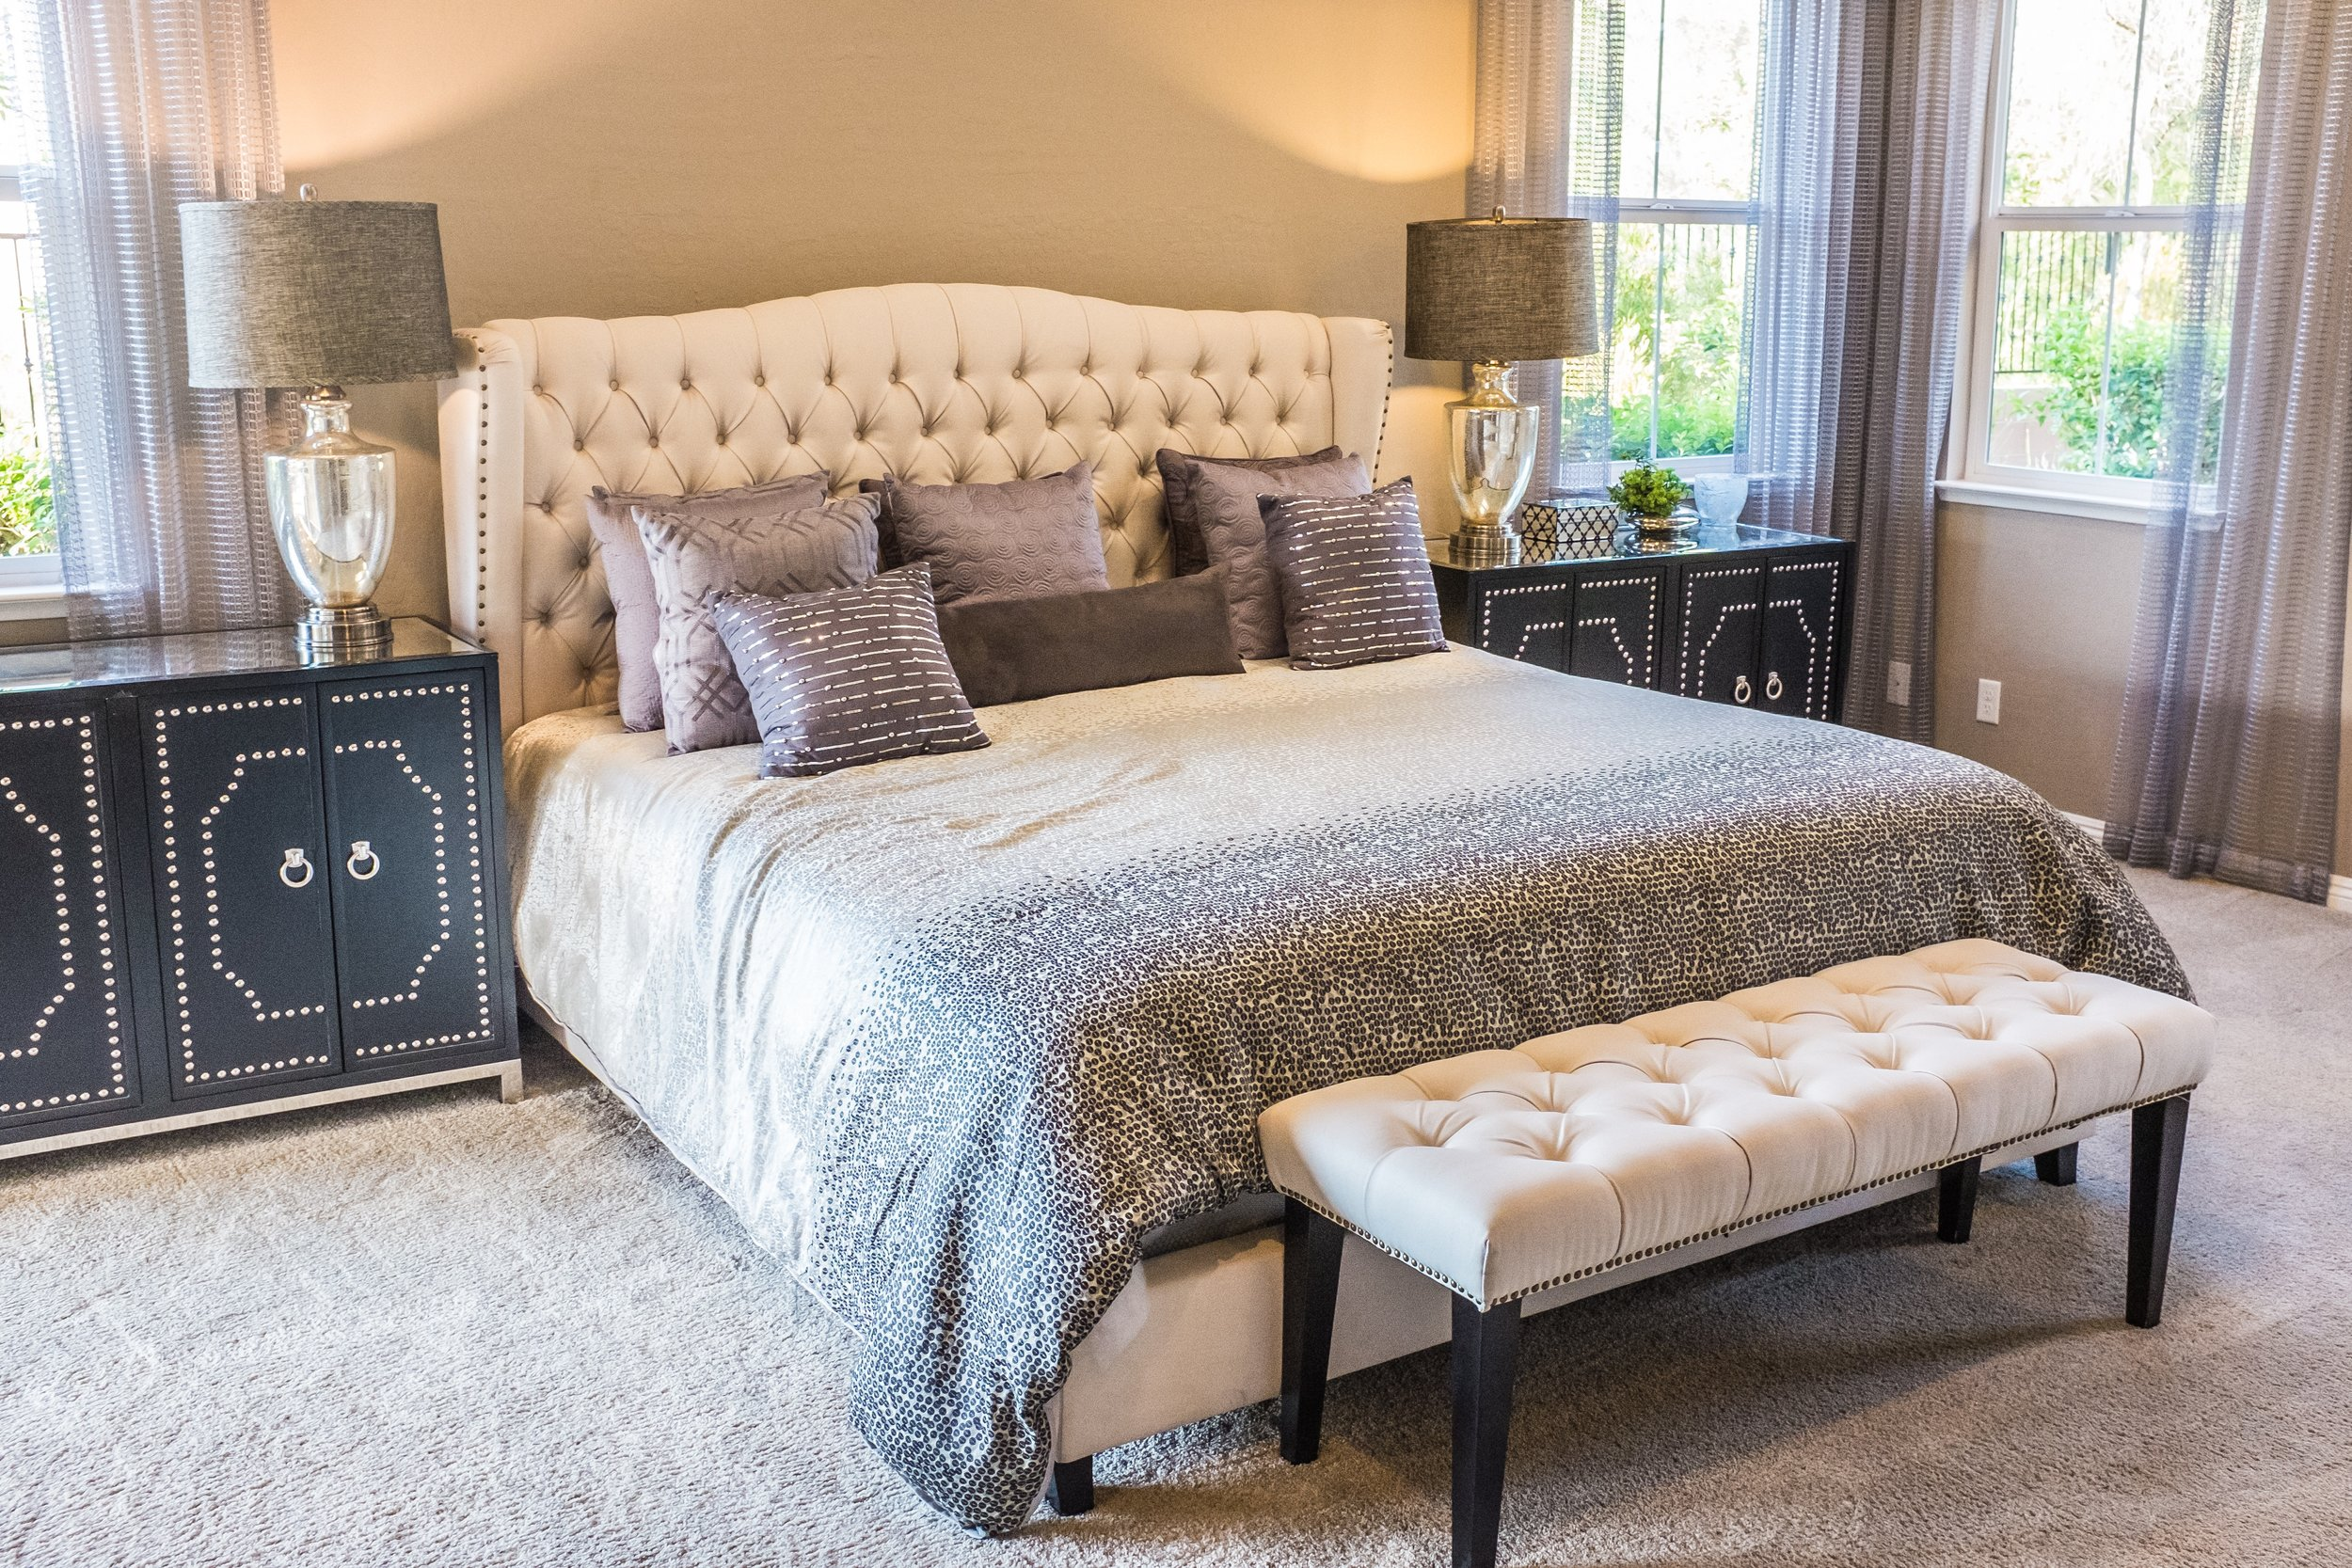 Stay-Organized-Professional-Organizer-Langley-Vancouver-South Surrey-White Rock-British Columbia-Rosely-Bedroom-Organization